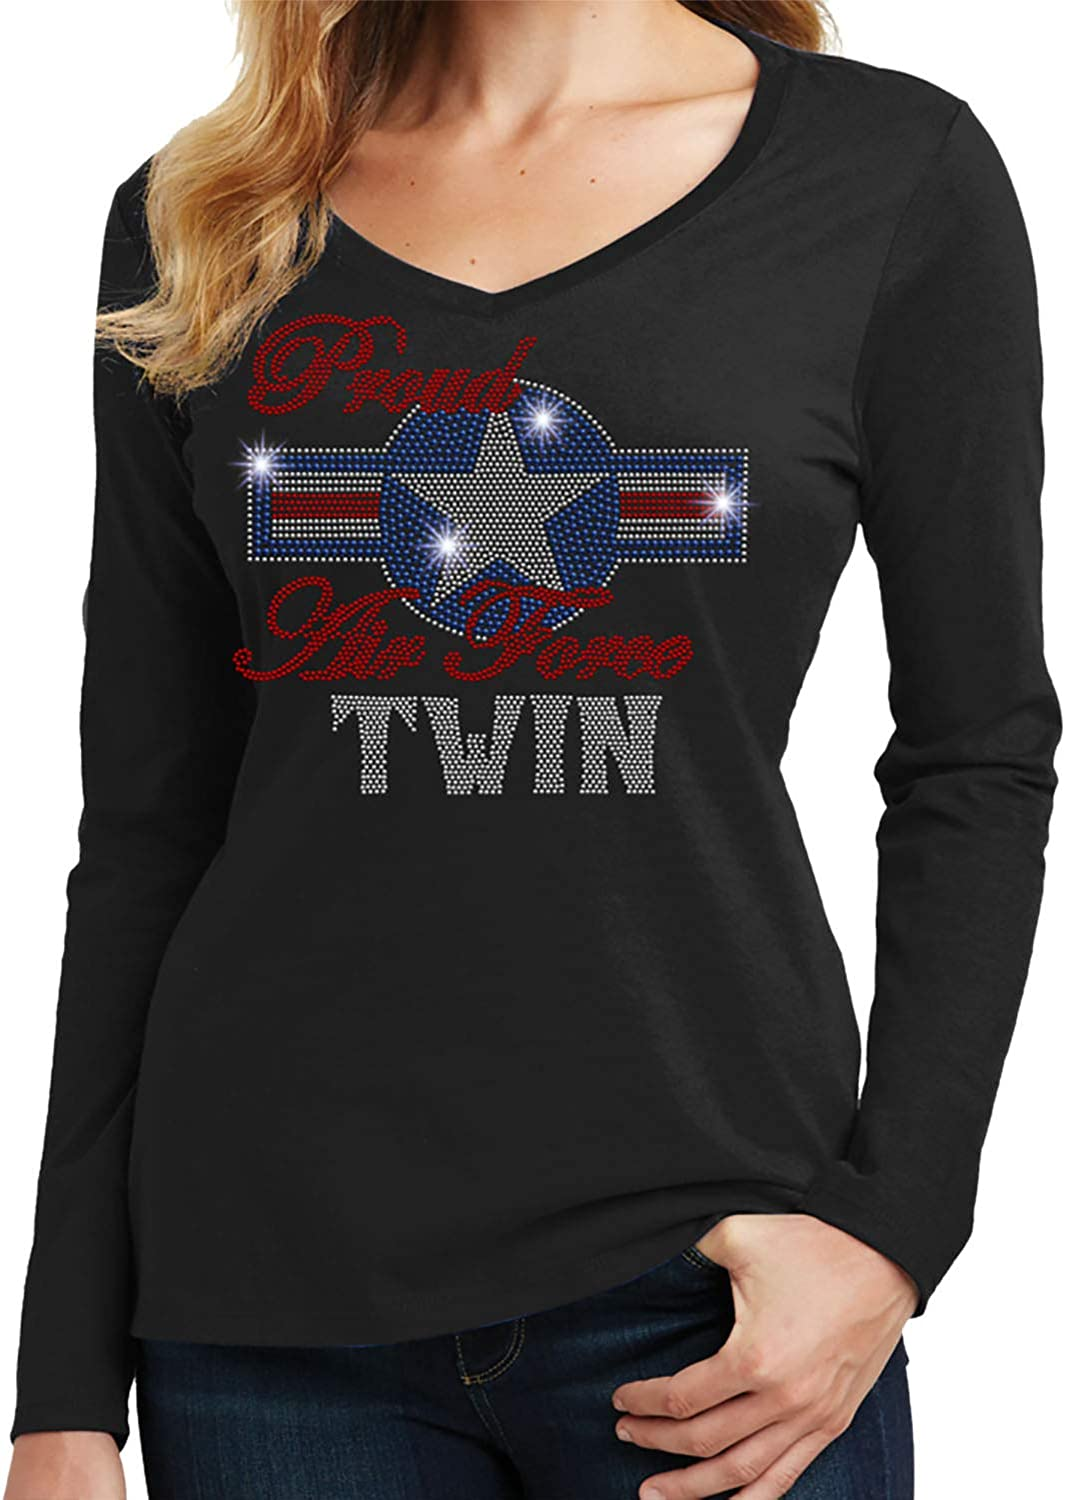 Armed Forces Spangle Rhinestone Bling Shirt Air Force Pride Beckys Boutique Proud Air Force Twin